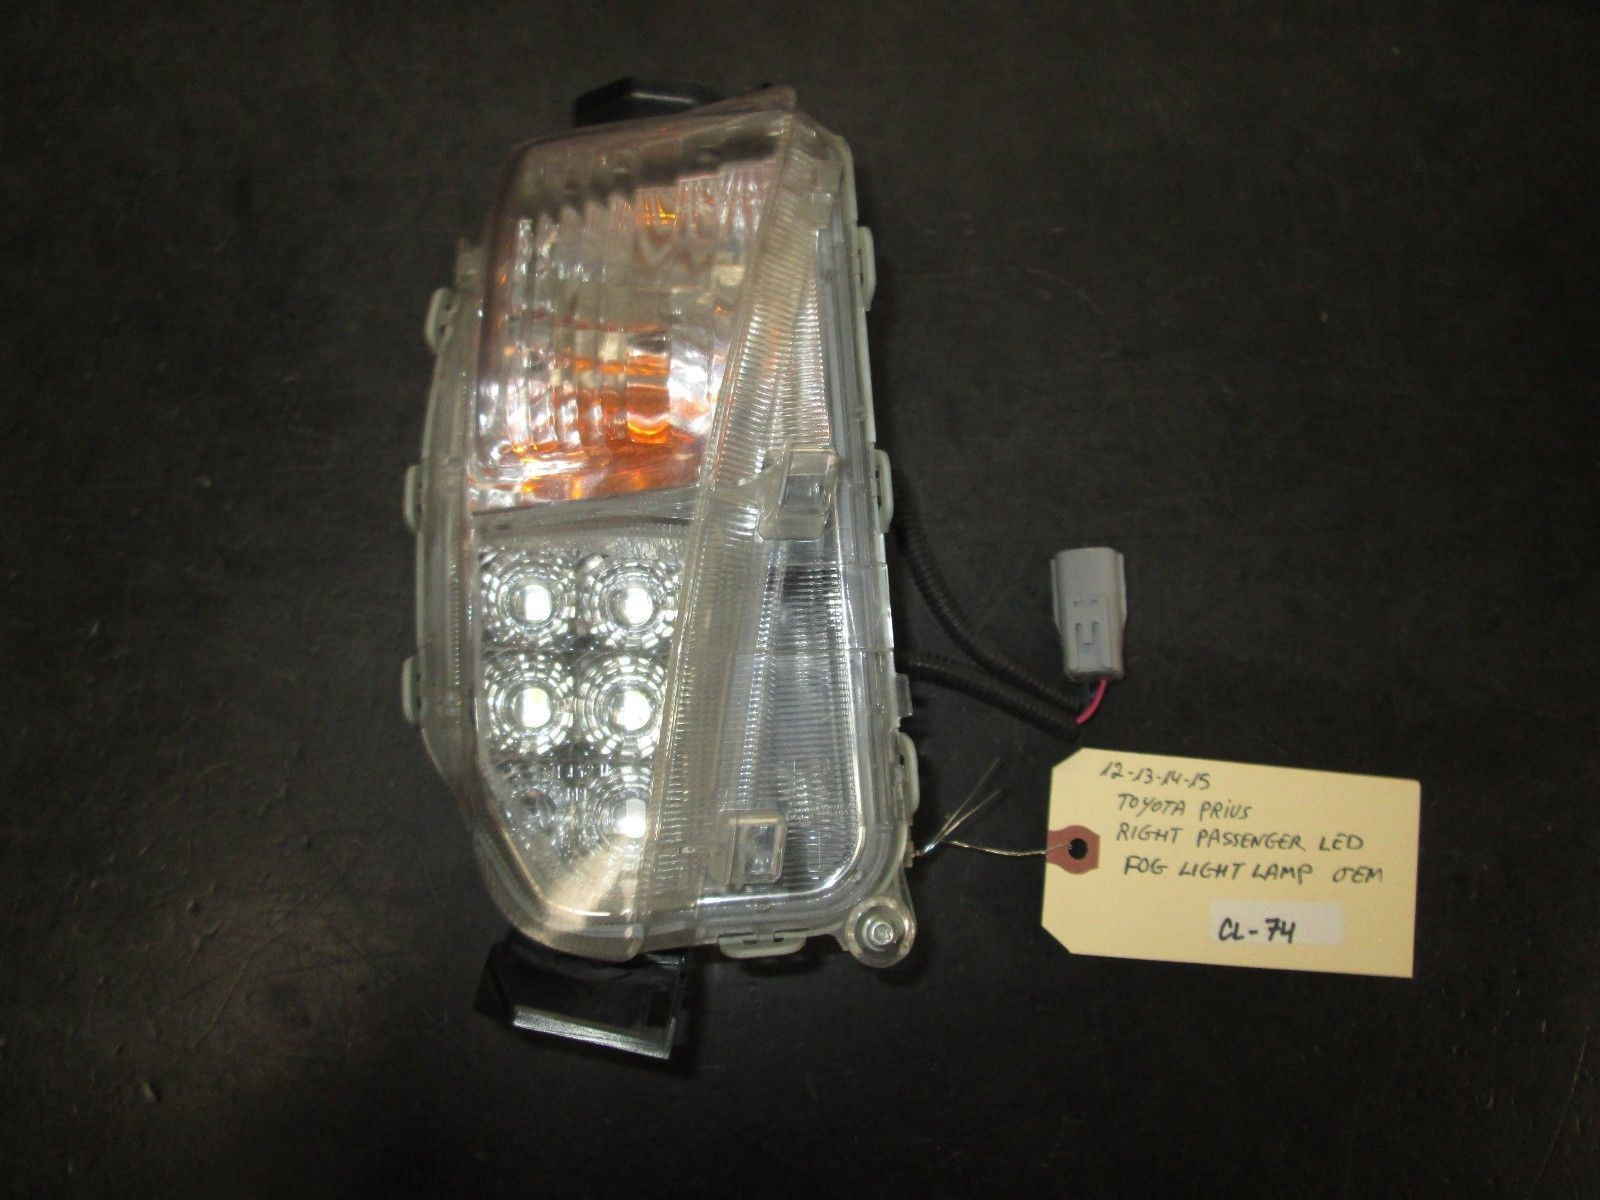 12 13 14 15 TOYOTA PRIUS RIGHT PASSENGER LED FOG LIGHT LAMP OEM